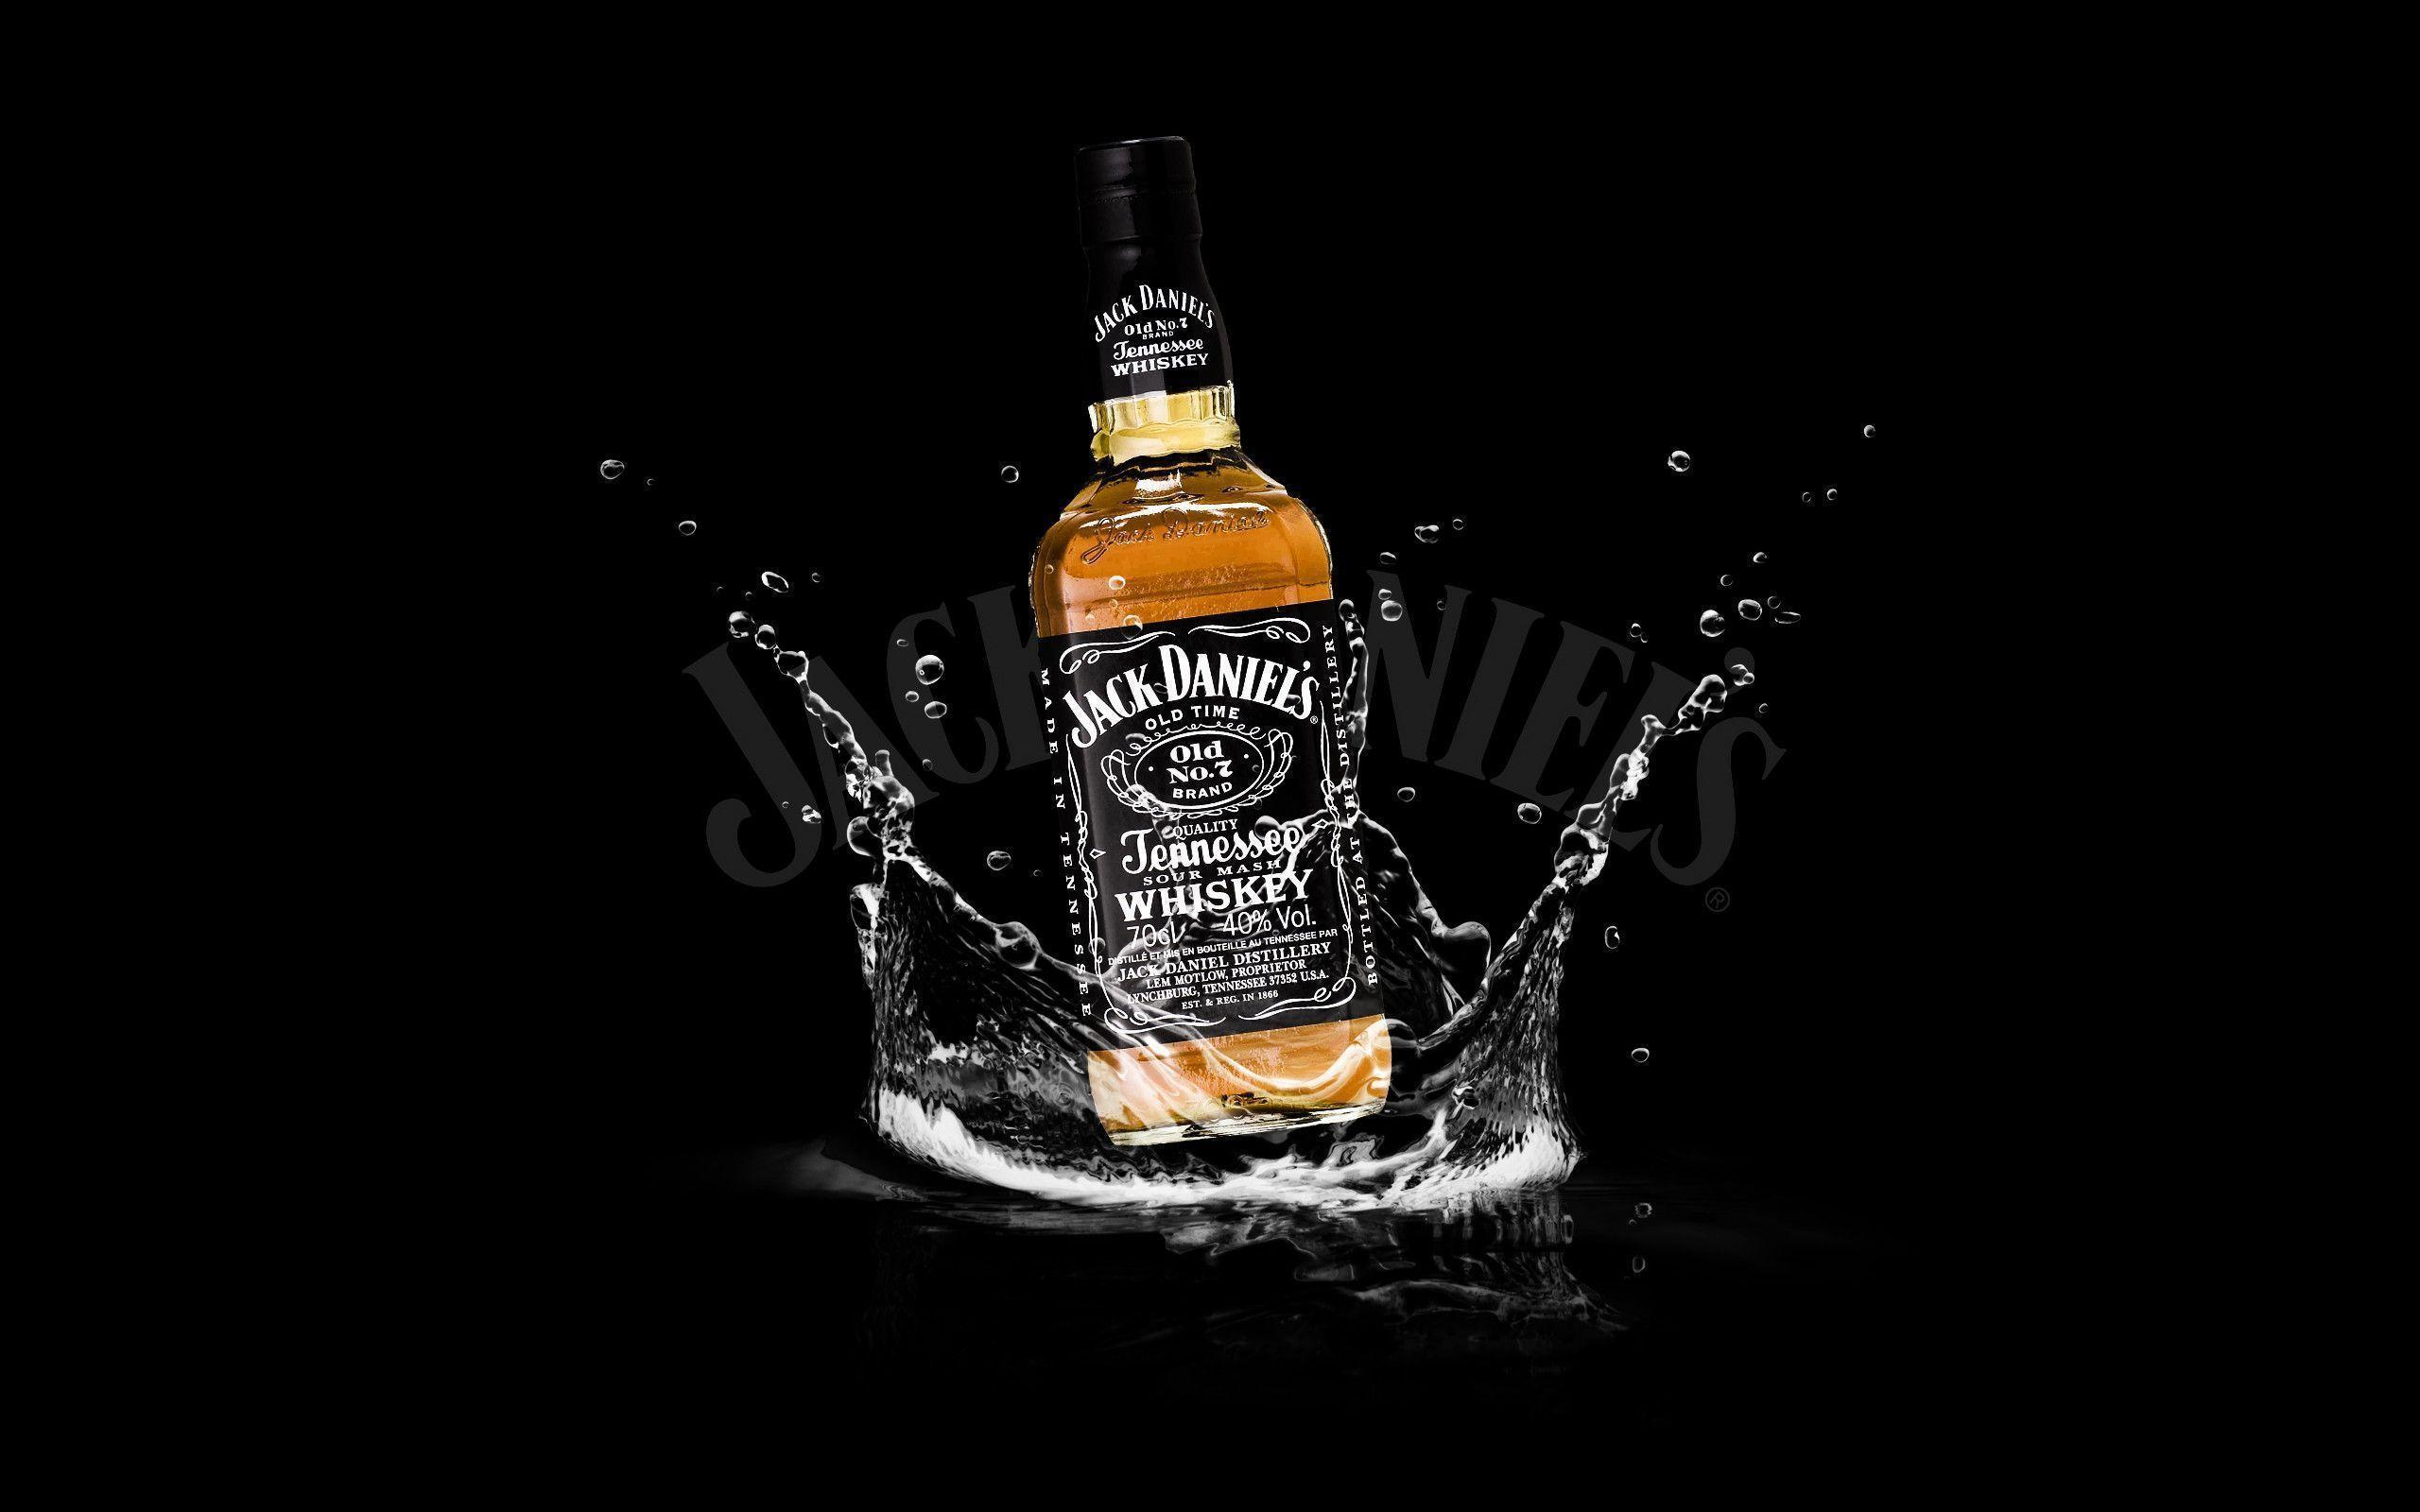 550+ Wallpaper Hp Jack Daniels Gratis